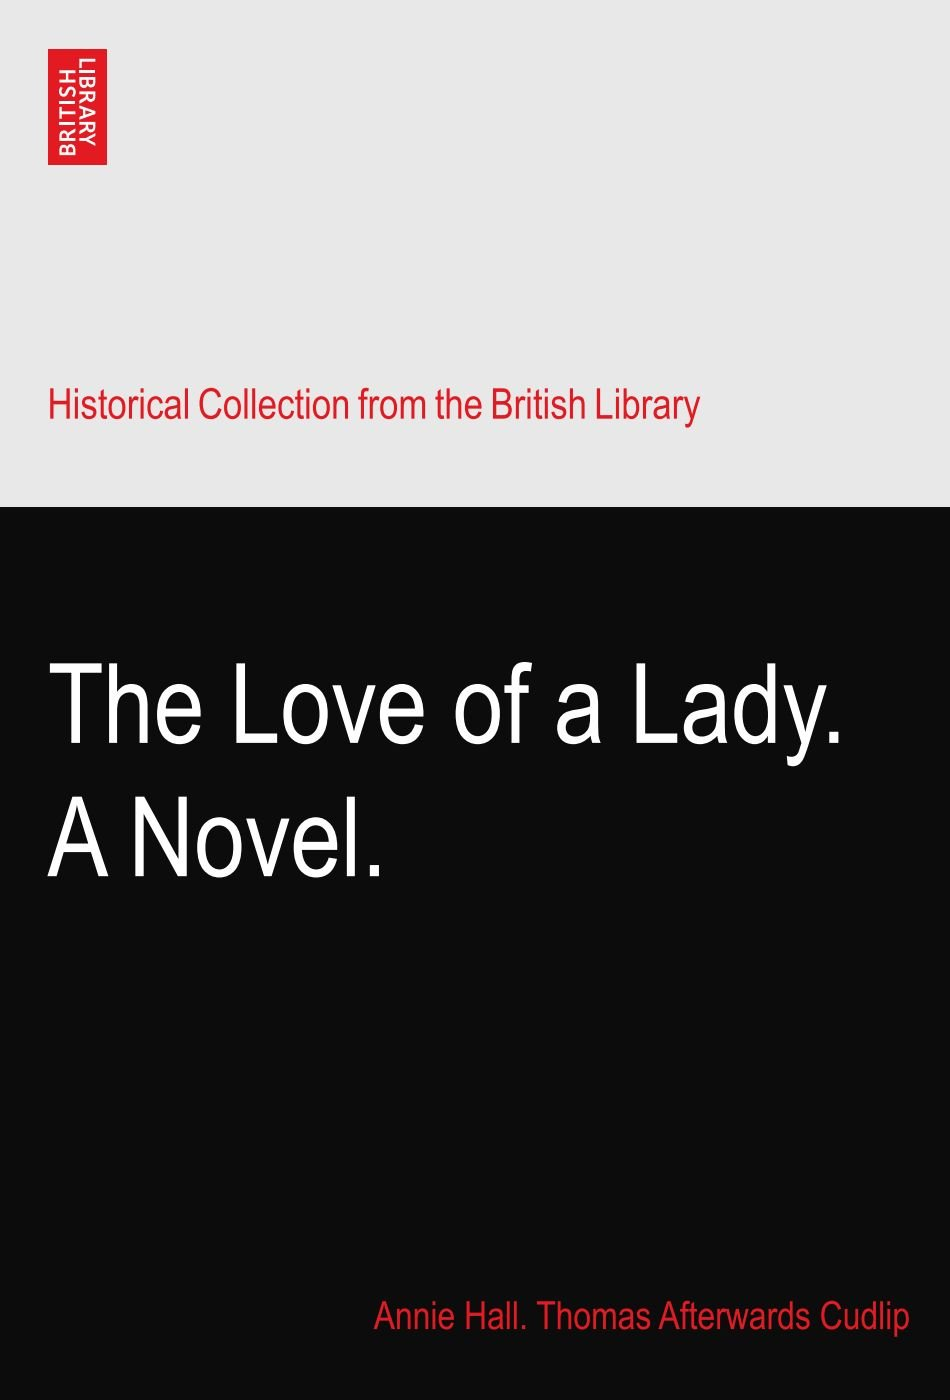 Download The Love of a Lady. A Novel. ebook